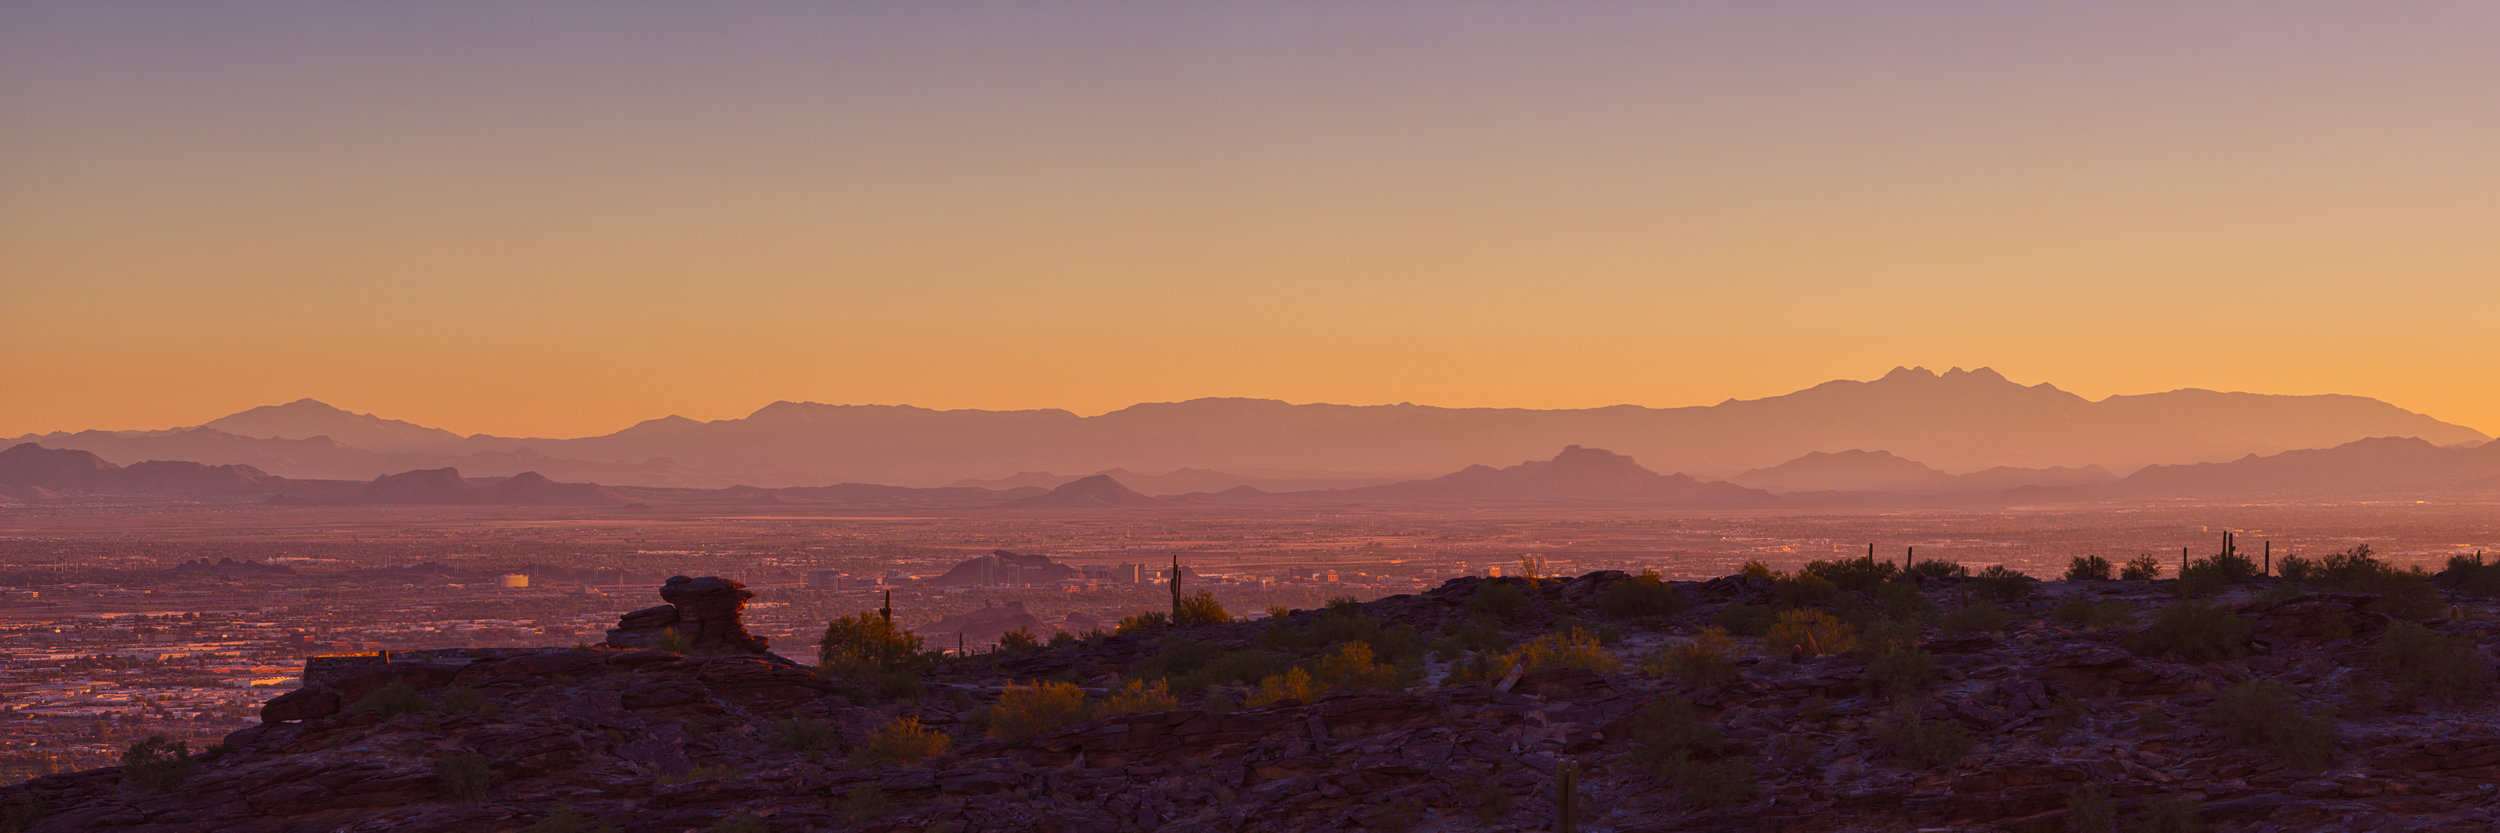 Phoenix, Arizona framed by mountains Photo Credit: Brian Truono